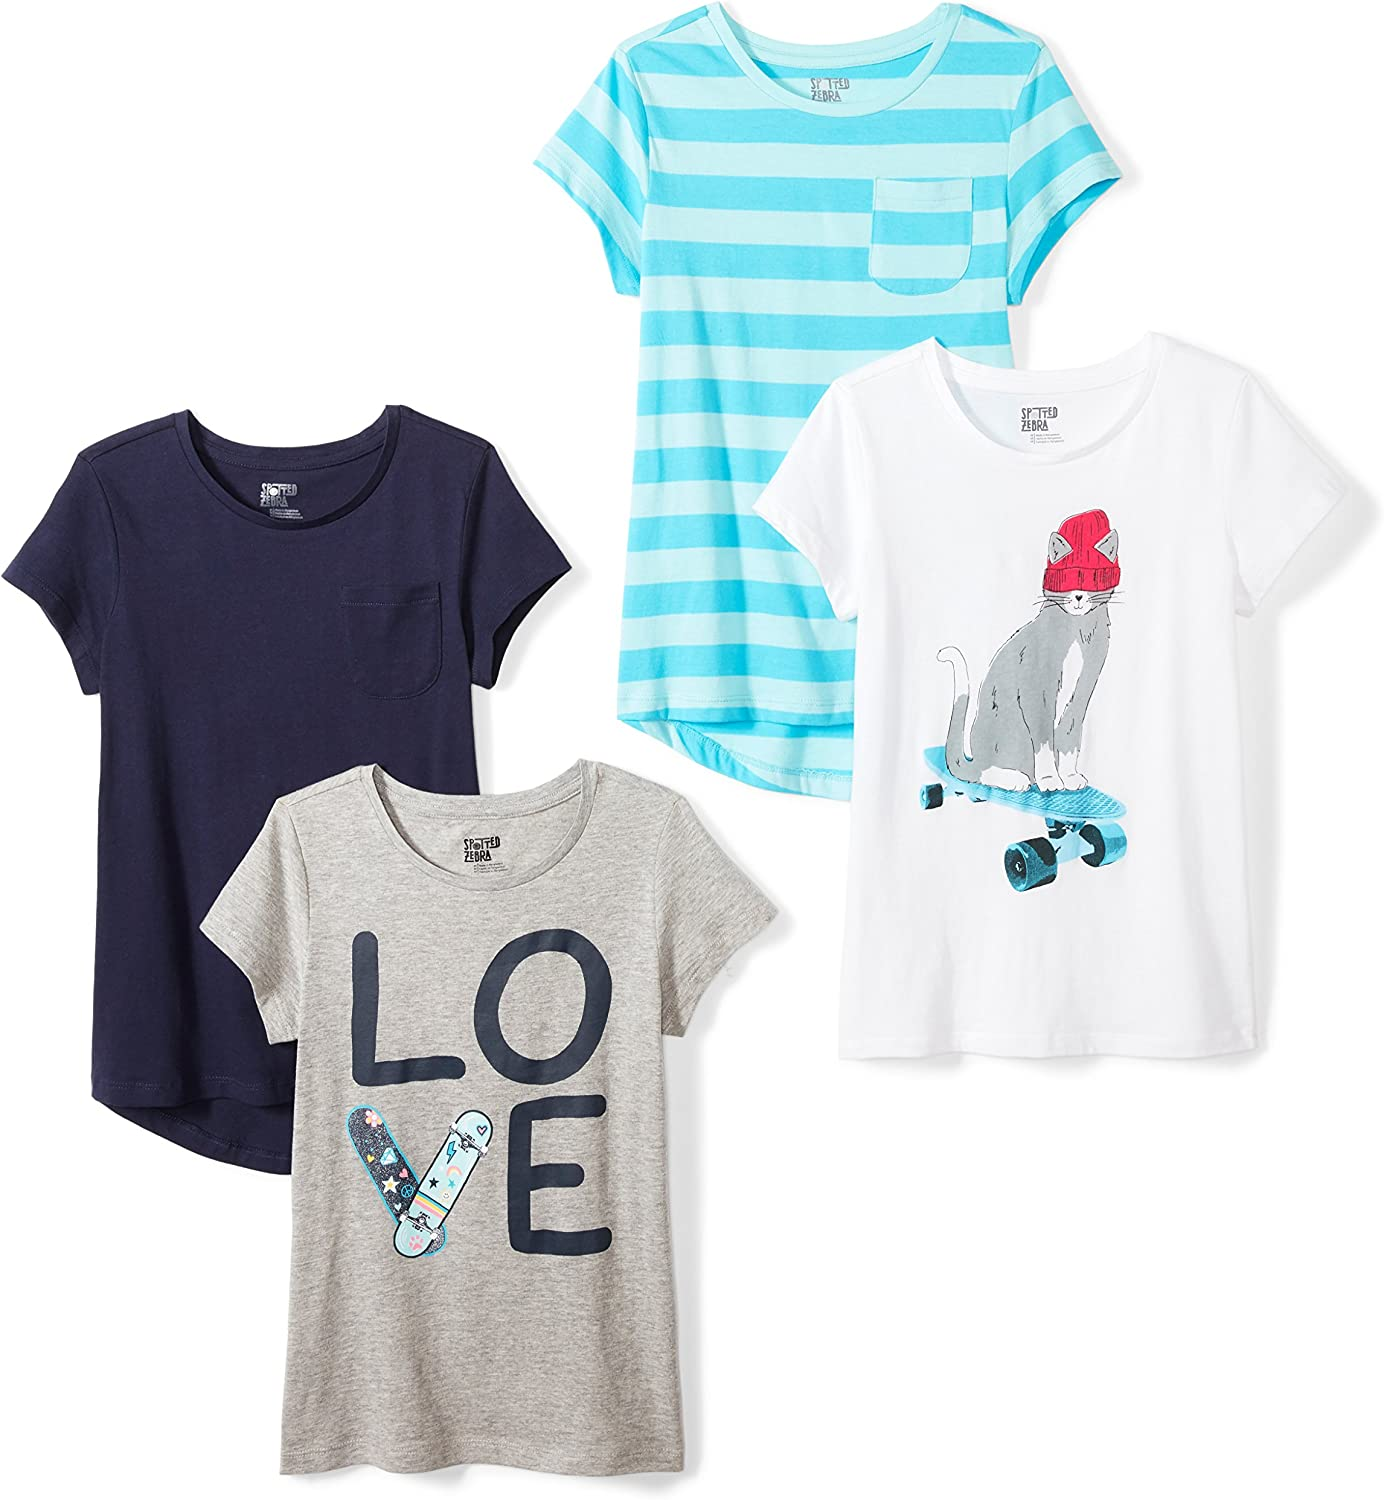 Top 10 Food Tshirts For Girls